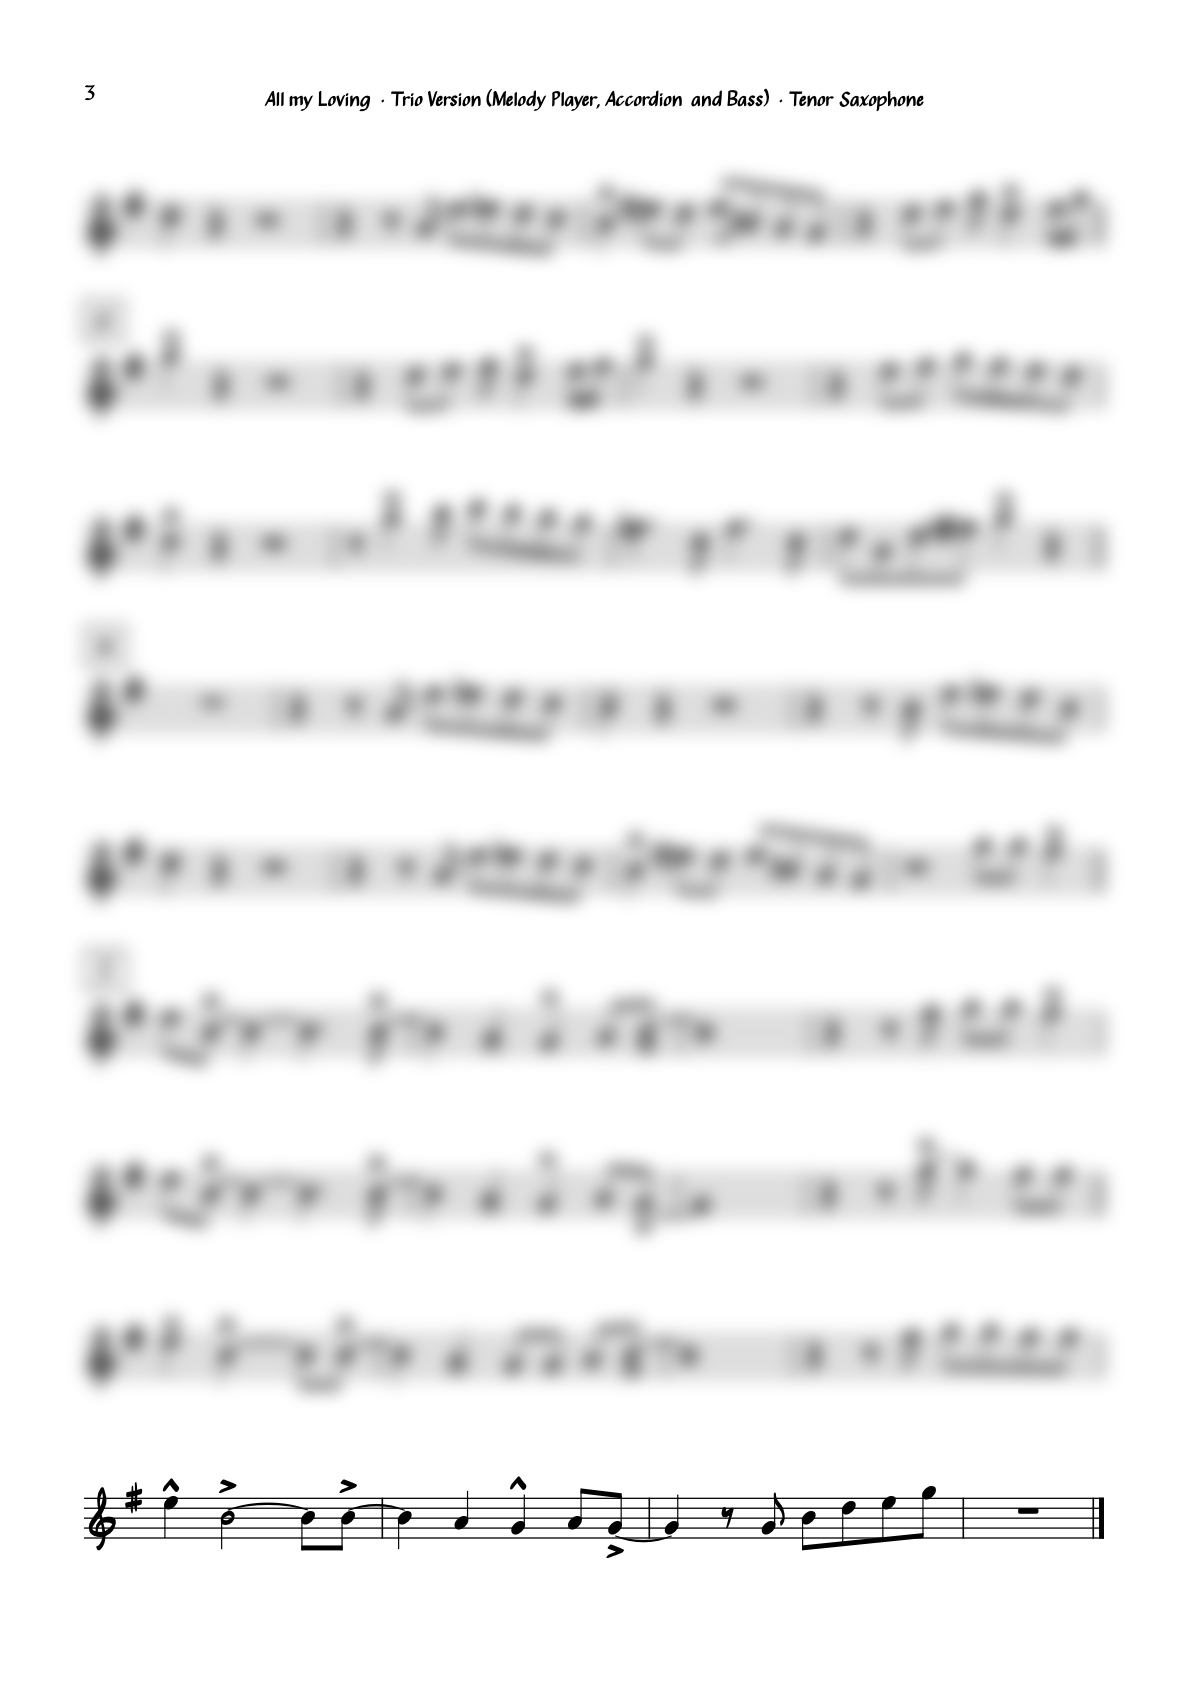 """""""All my Loving"""" for Tenor Saxophone · Swing Version for Tenor Sax, Accordion and Bass"""